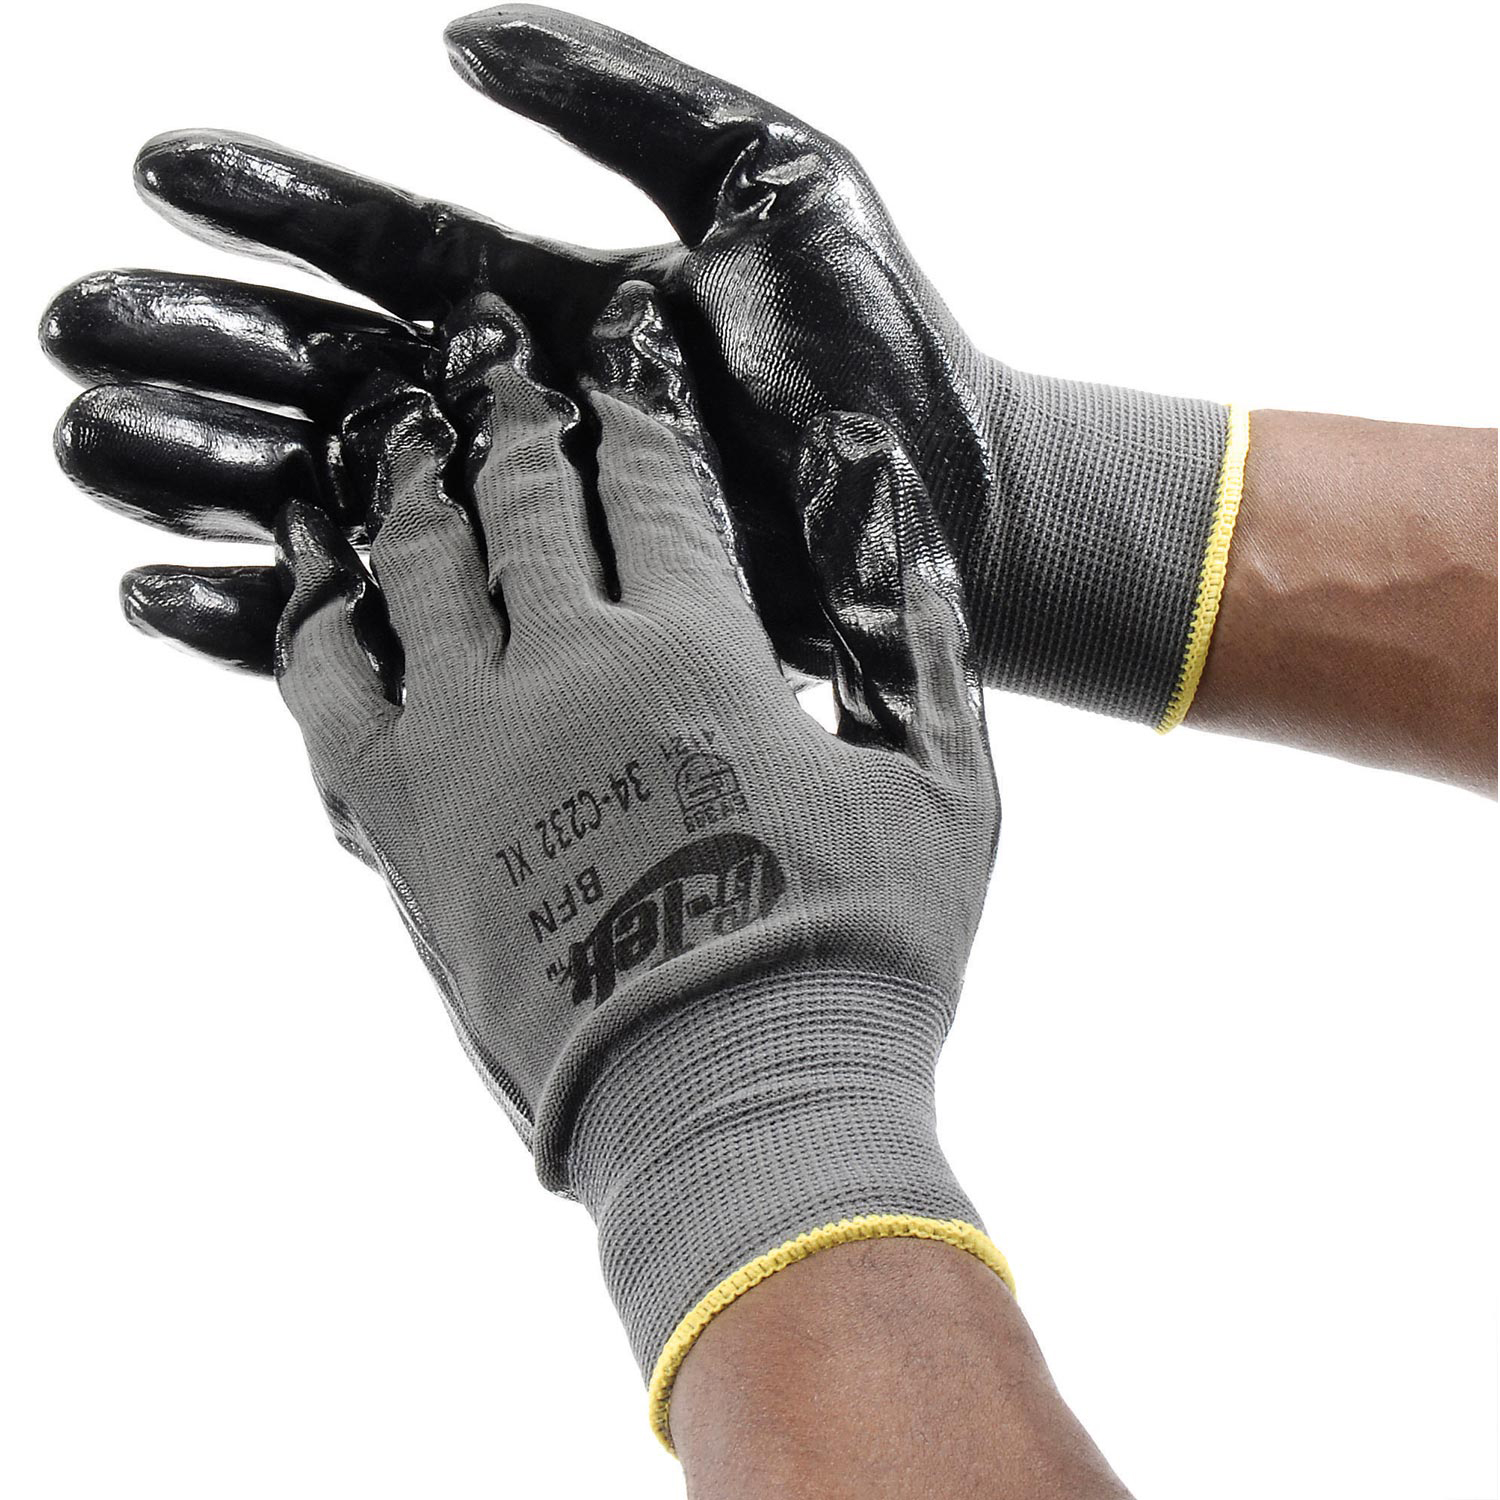 PIP G-Tek® Nitrile Coated Nylon Grip Gloves, Black/Gray, Large, 12 Pairs, Lot of 1